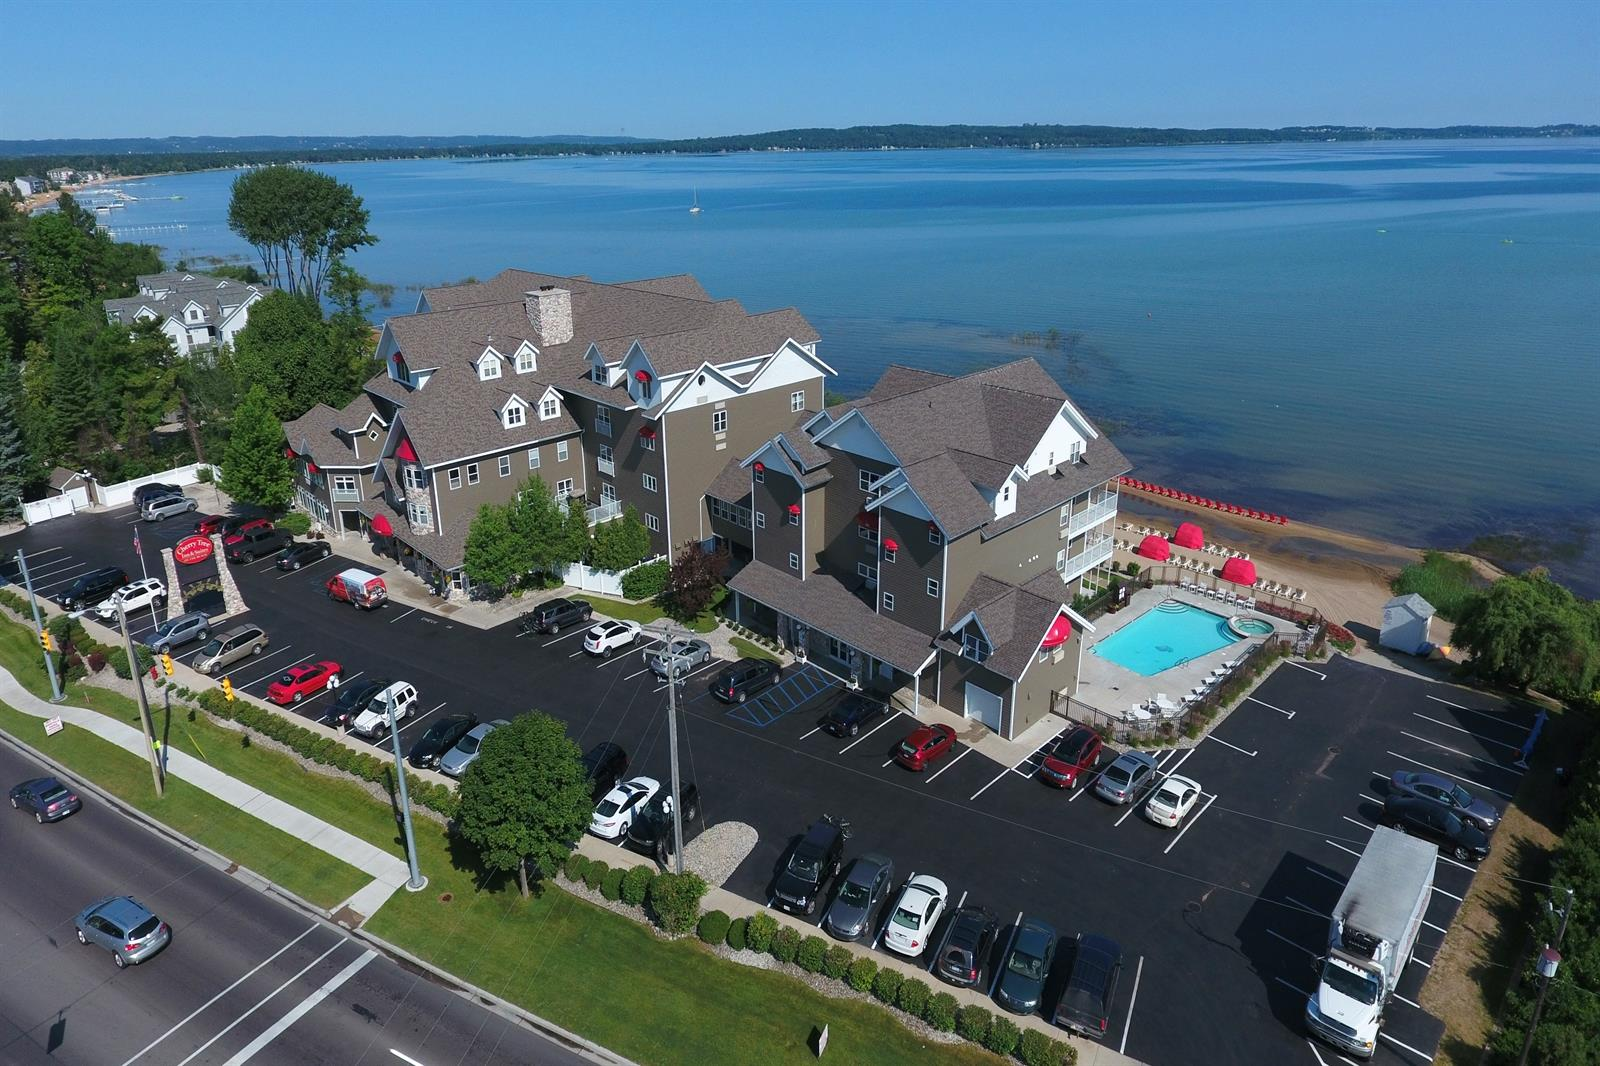 Aerial view of Cherry Tree Inn & Suites Hotel in Traverse City Michigan